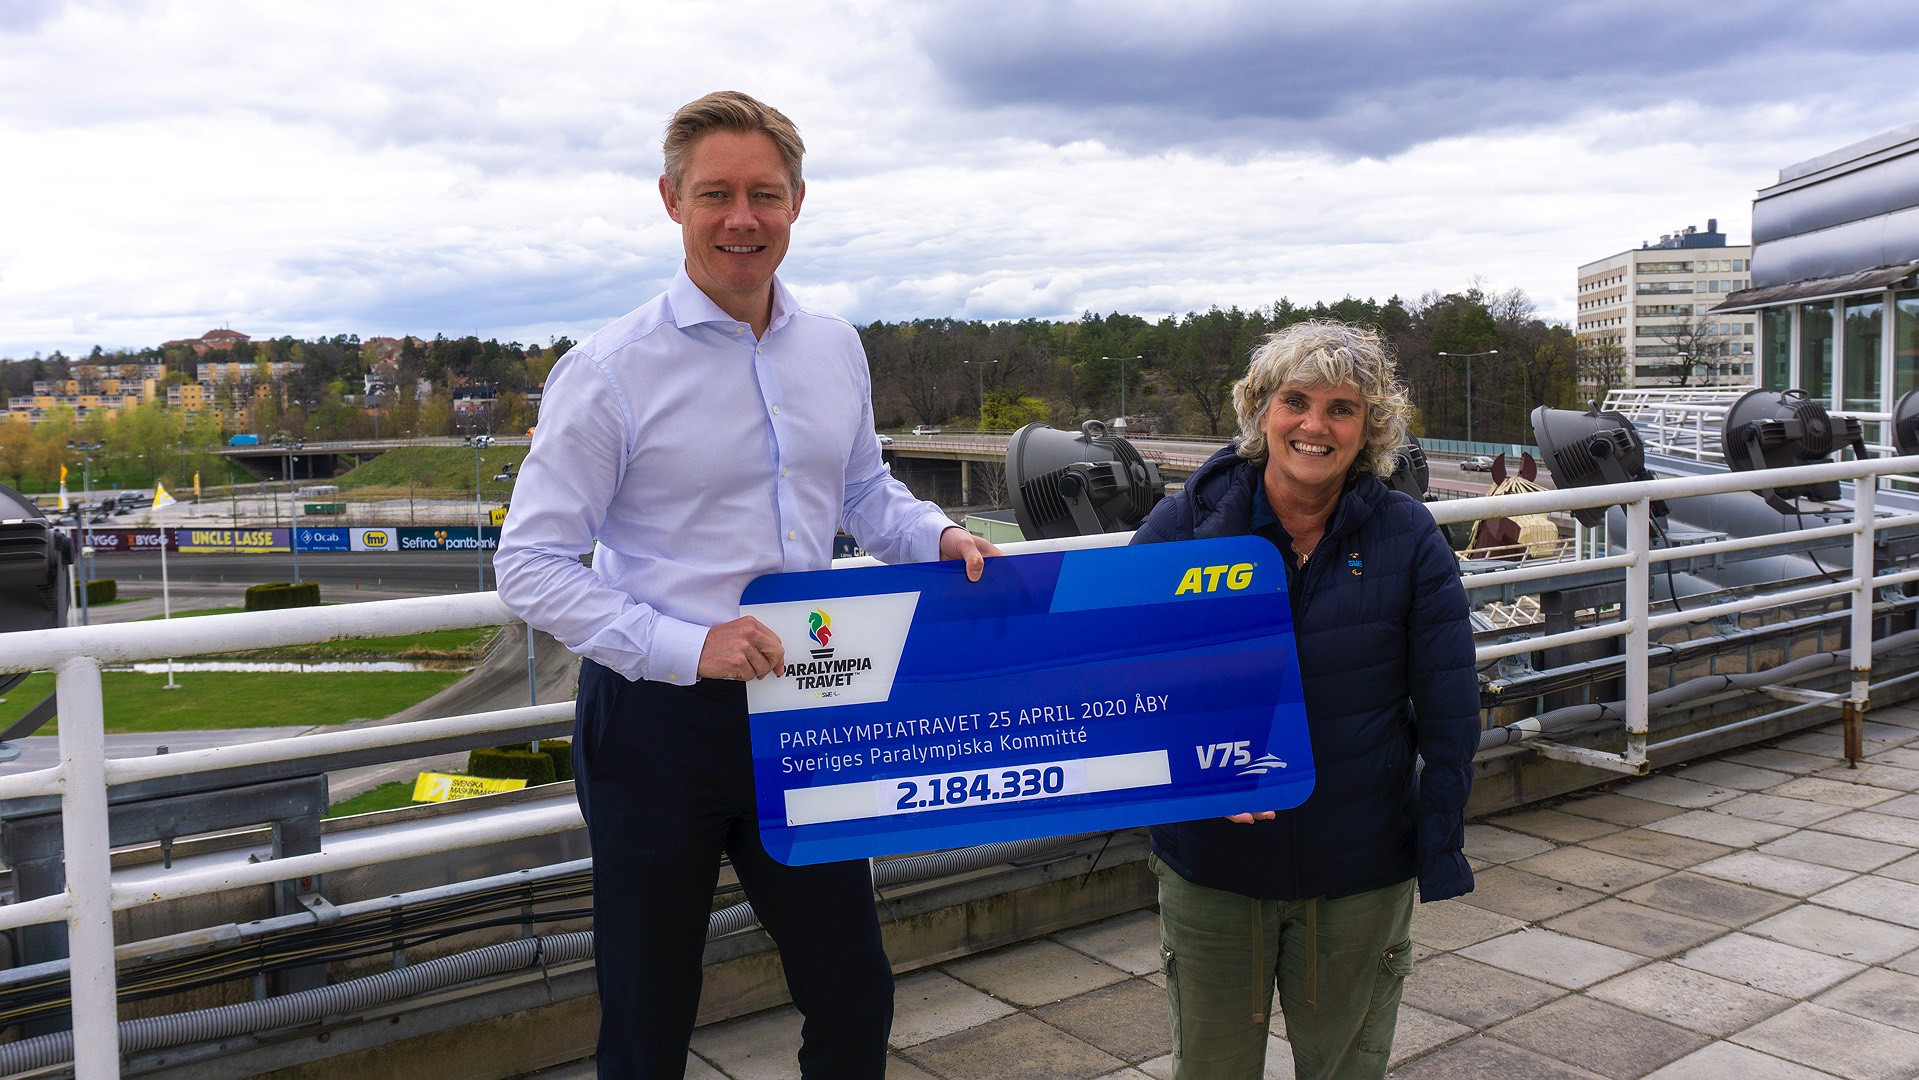 The money will be used to help Sweden's preparations for the Tokyo 2020 Paralympic Games ©SPK